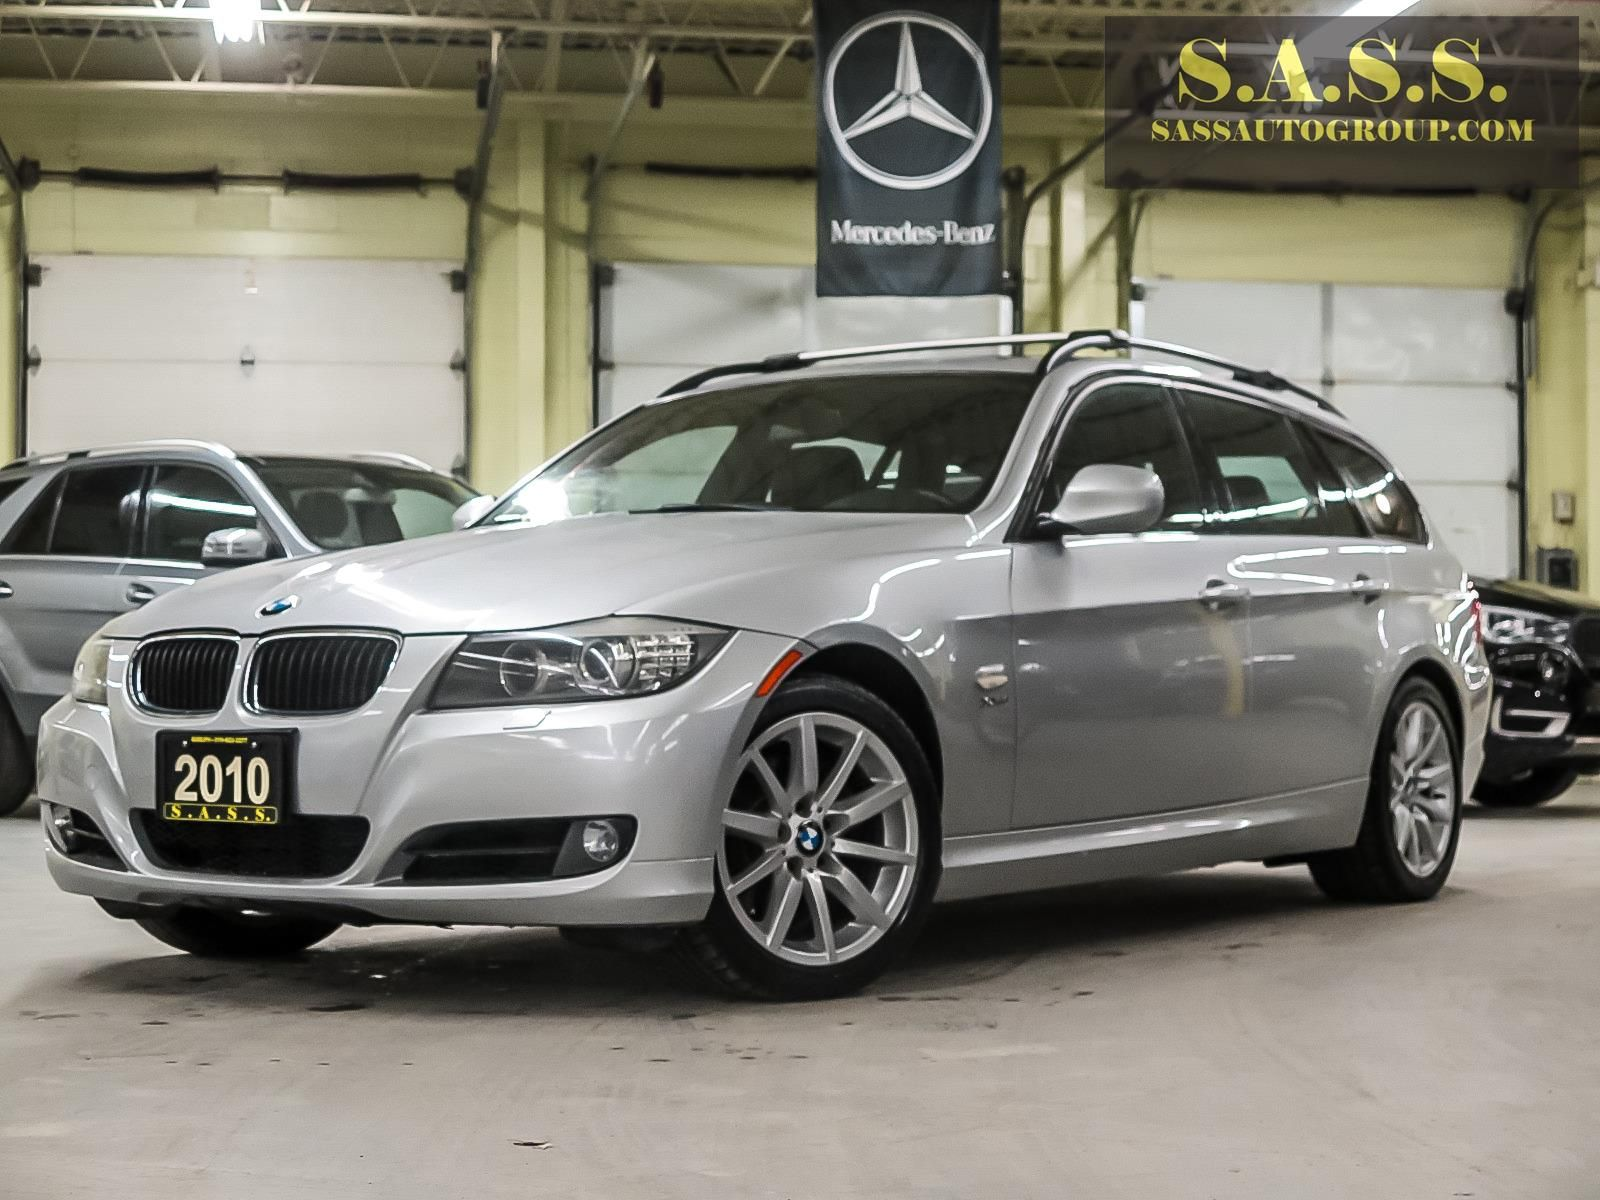 The Bmw 3 Series Has Been Continually Improved Year After Year